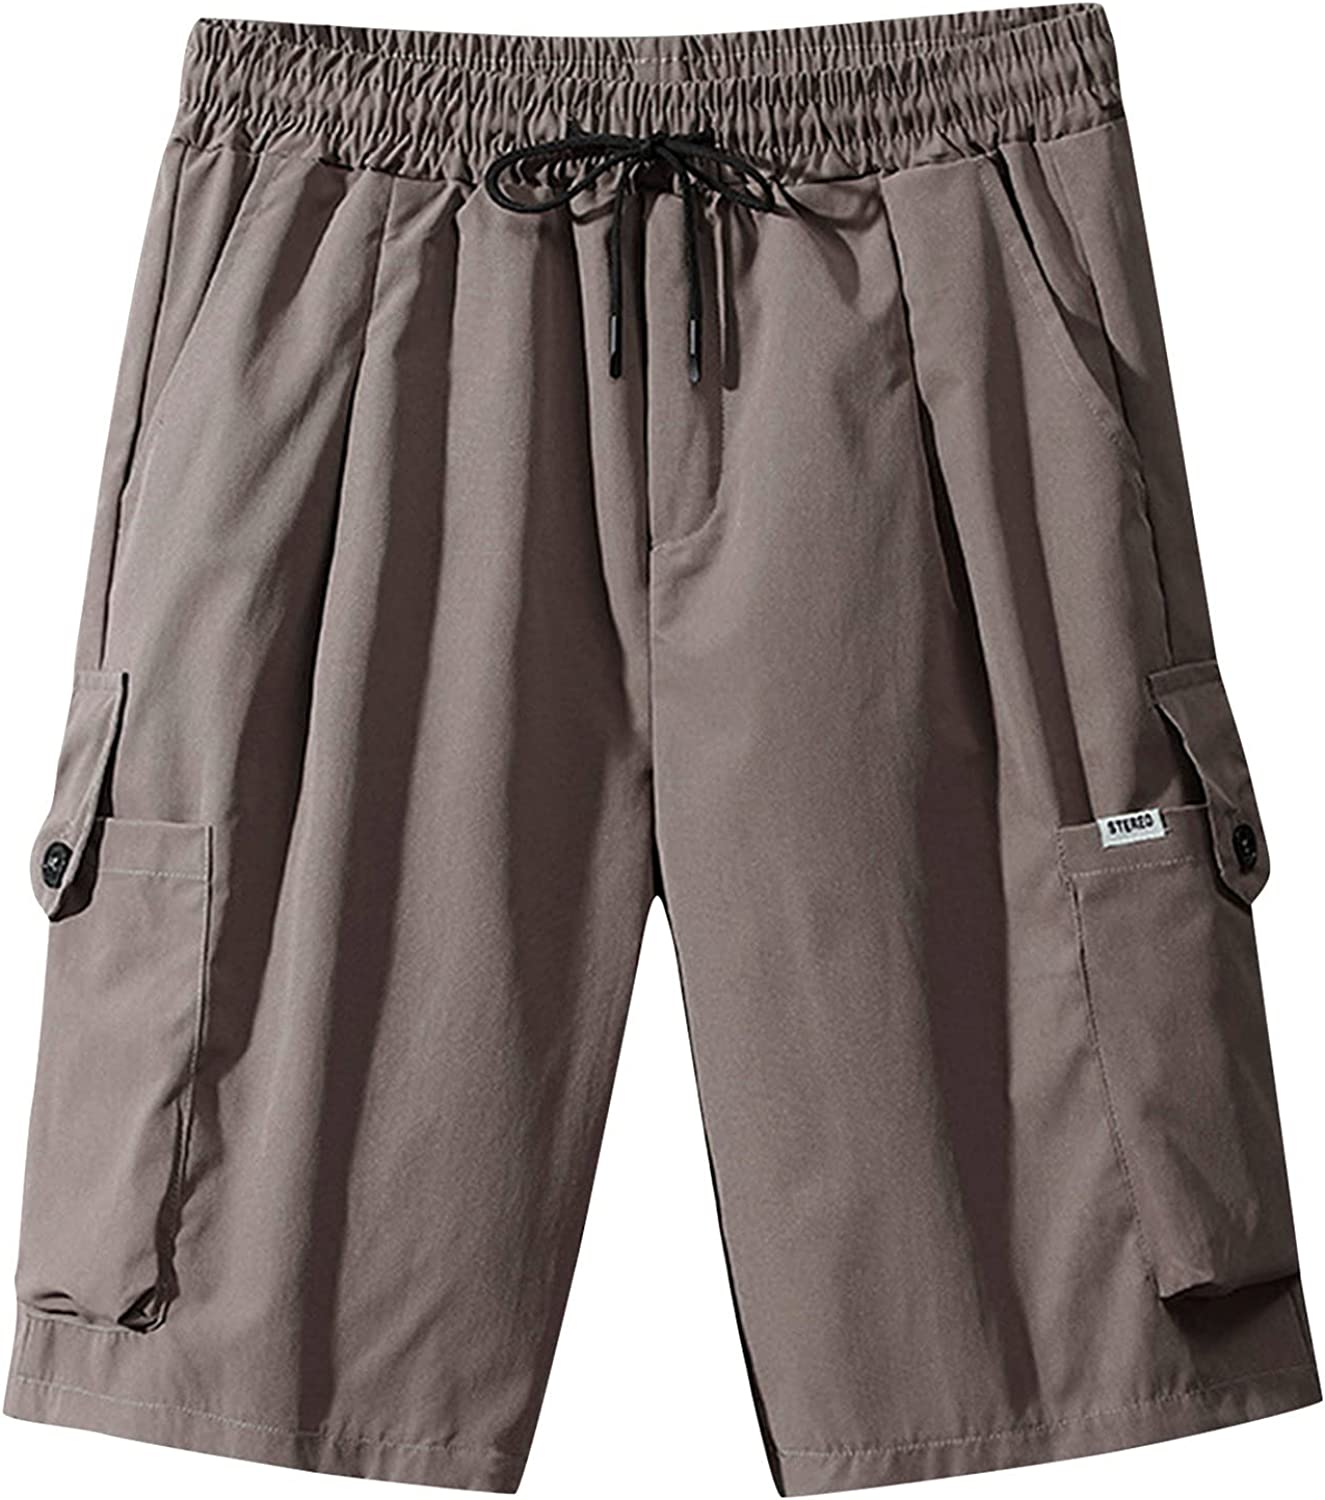 Mens Fashion Comfort Cargo Pants Summer Shorts Free shipping anywhere in the nation Casual Relax-fit In stock